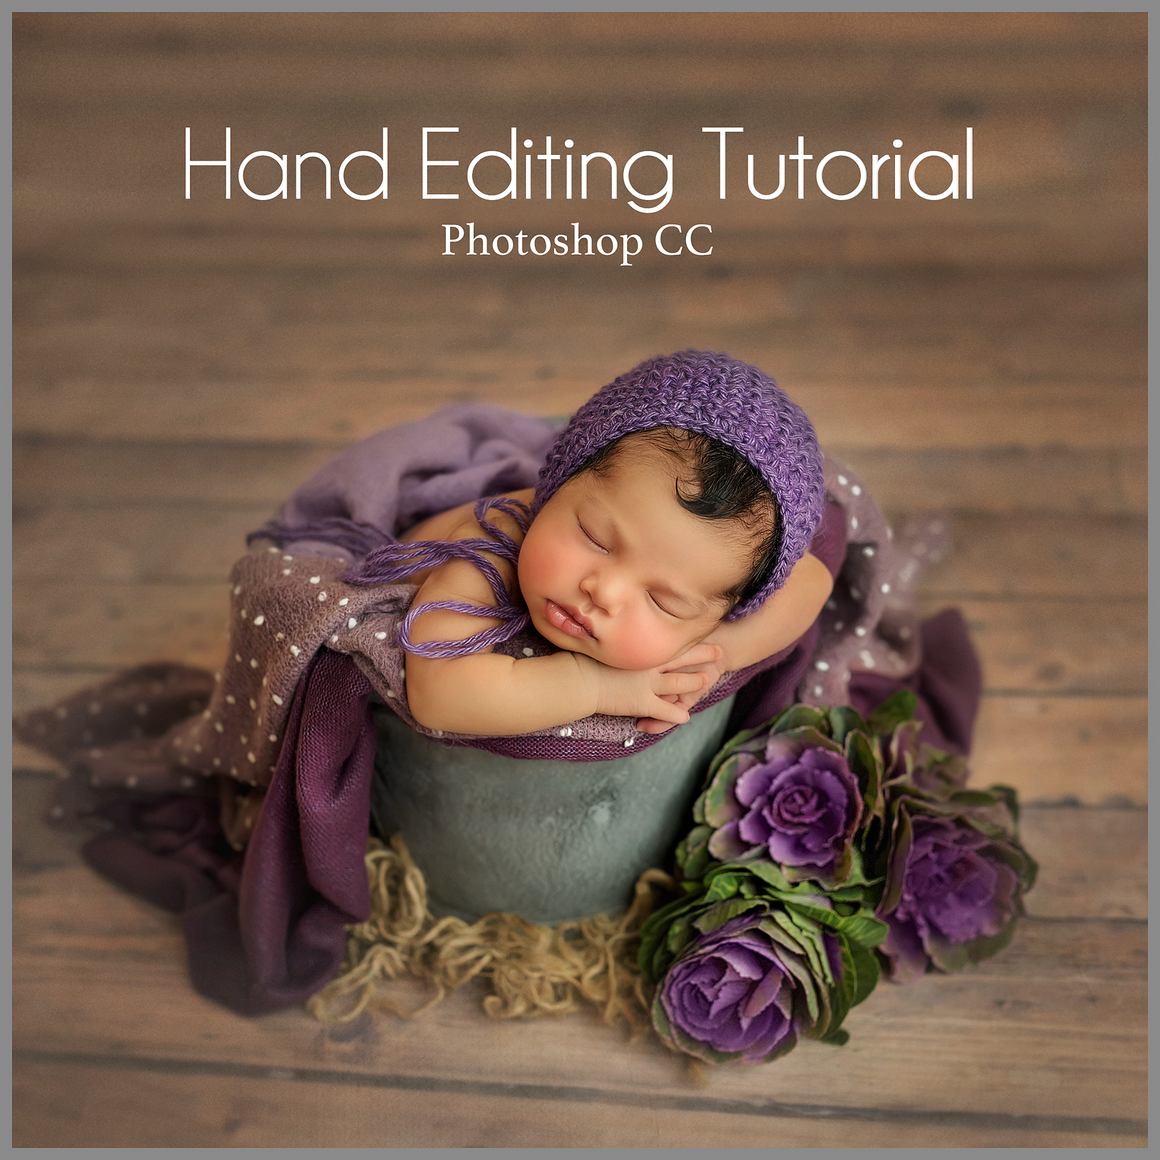 Kale Roses in Purple Newborn Editing Tutorial | Photoshop Class - Dream Artsy Actions Tutorials